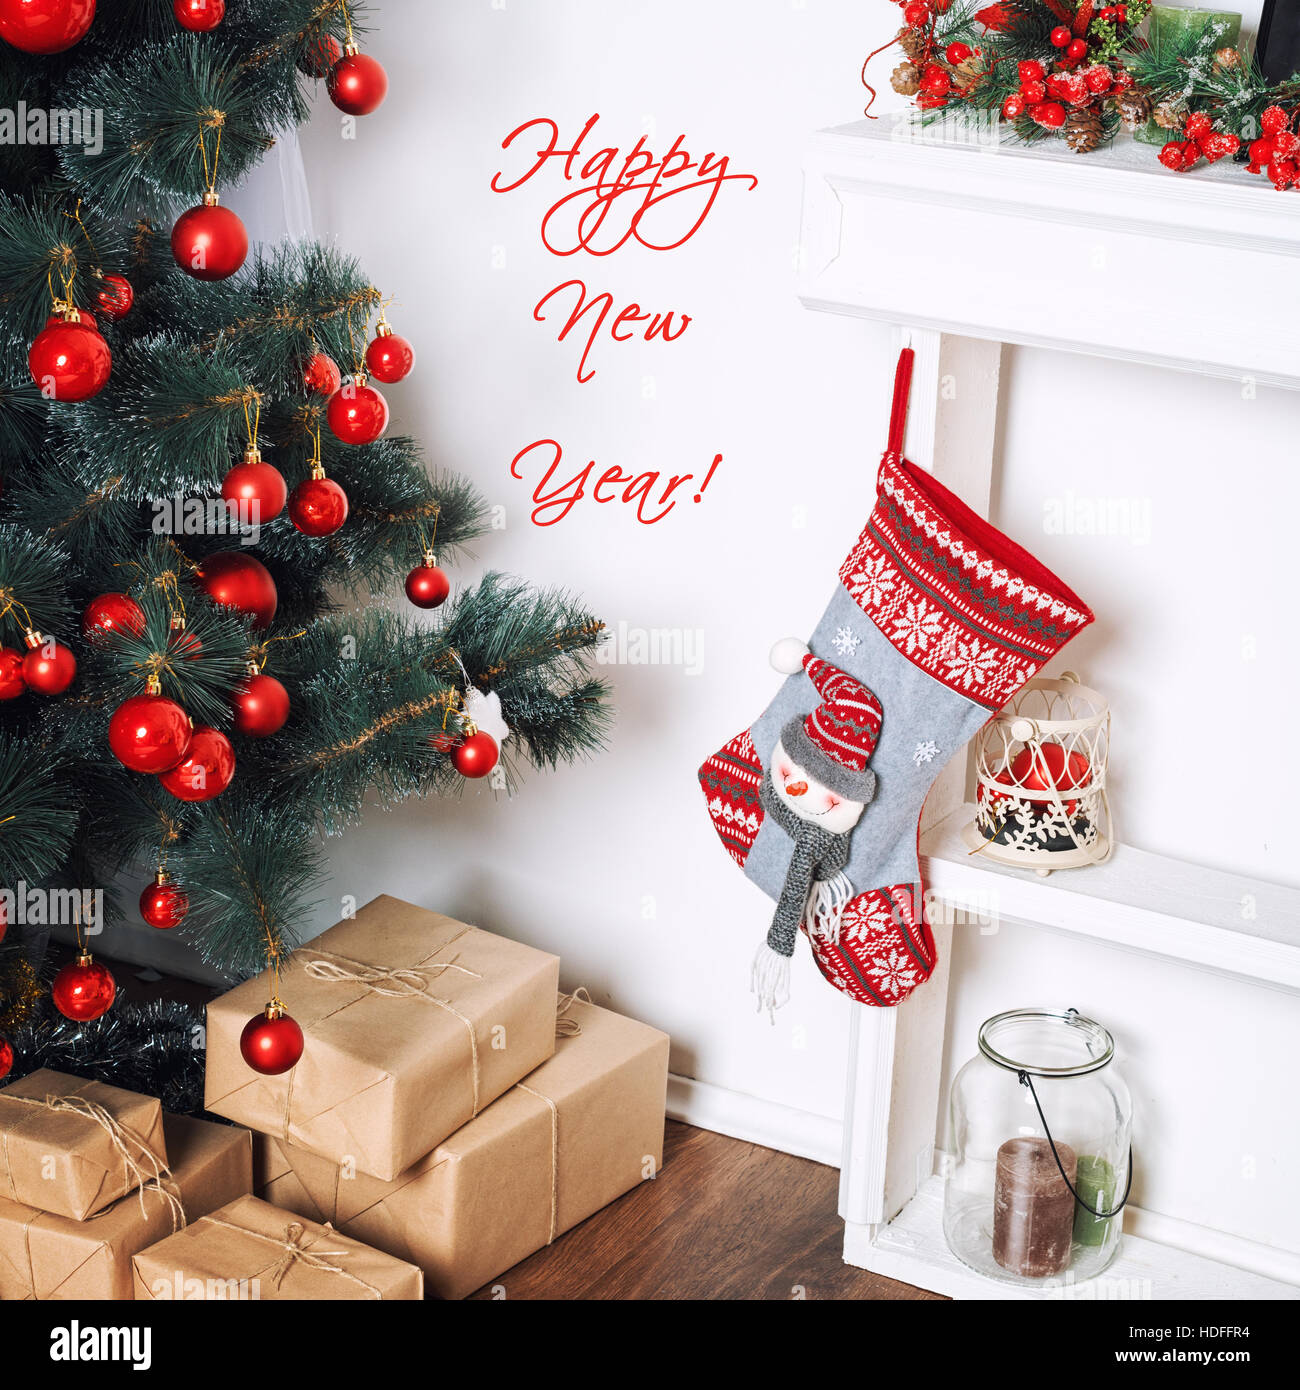 happy new year card beautiful decorated room with christmas tree and presents under it winter holidays theme